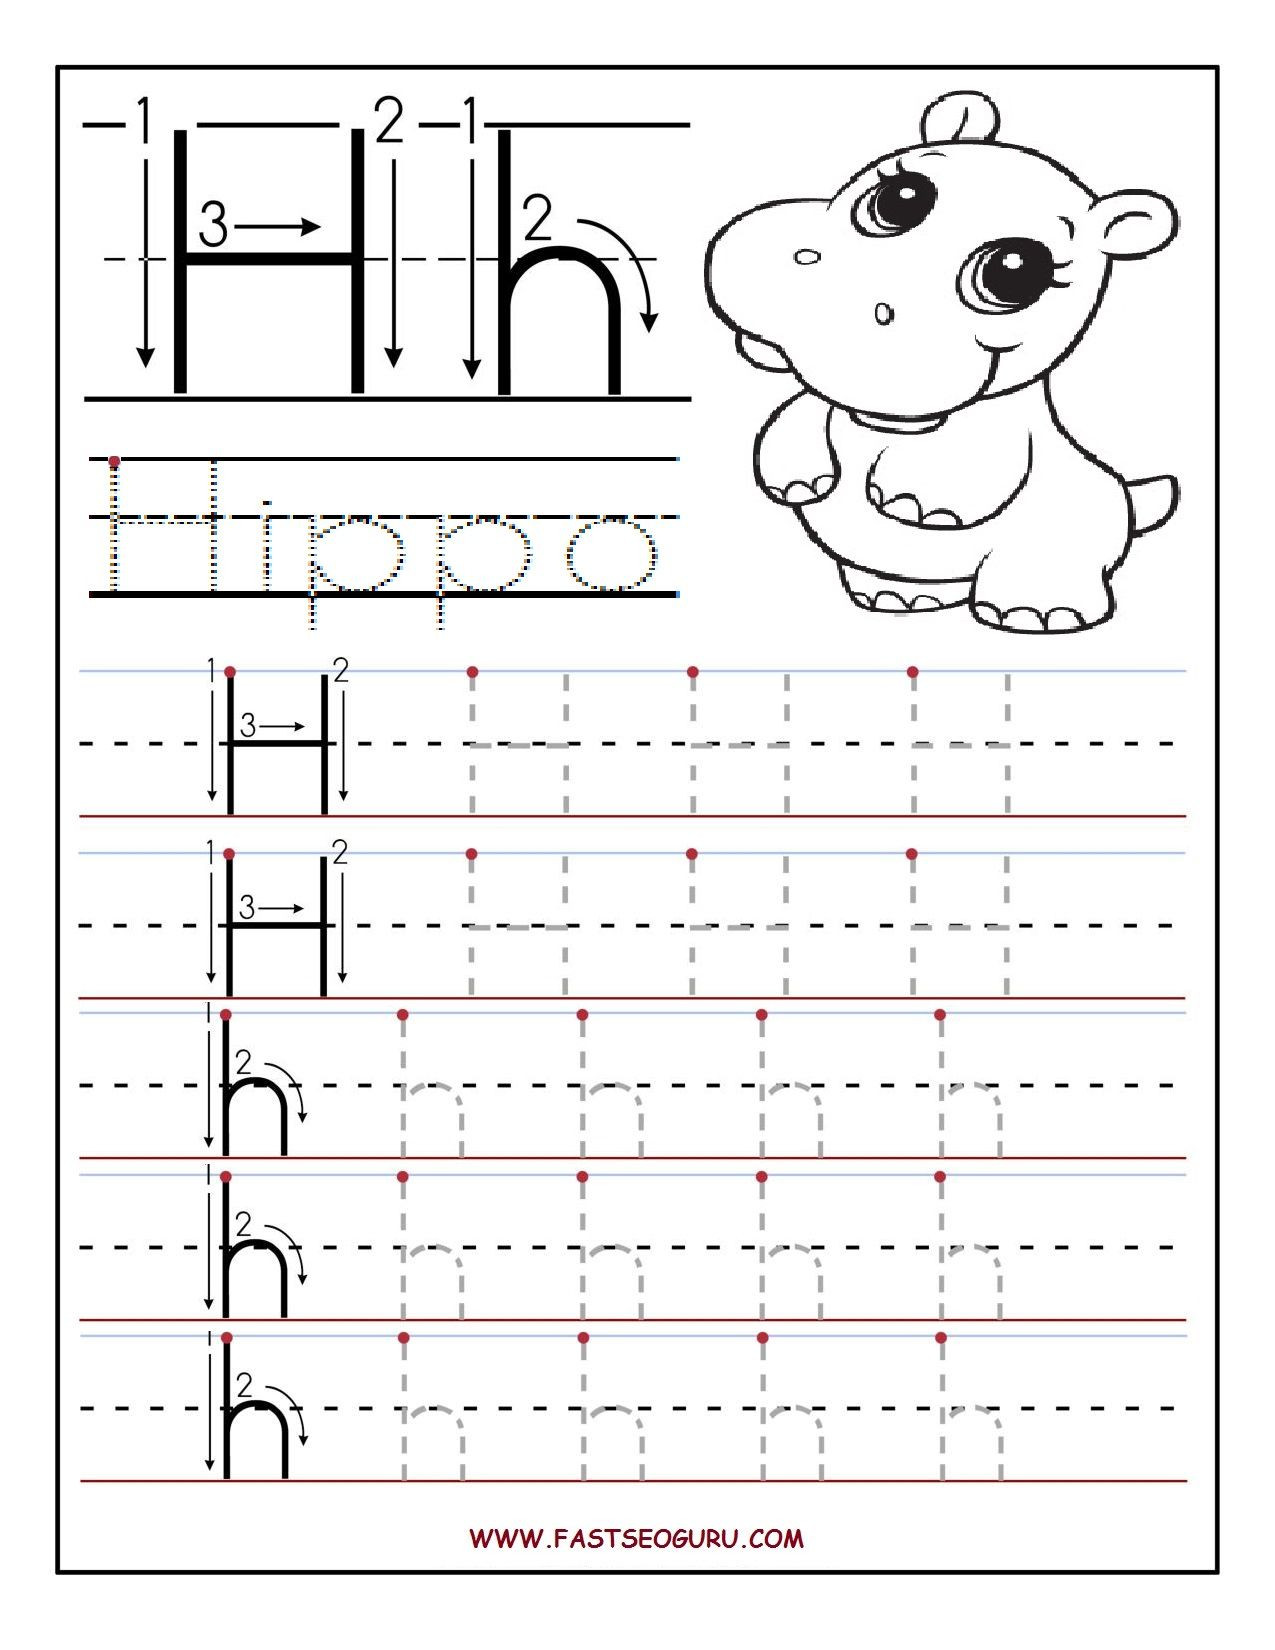 Letter H Worksheets Preschool Printable Letter H Tracing Worksheets for Preschool